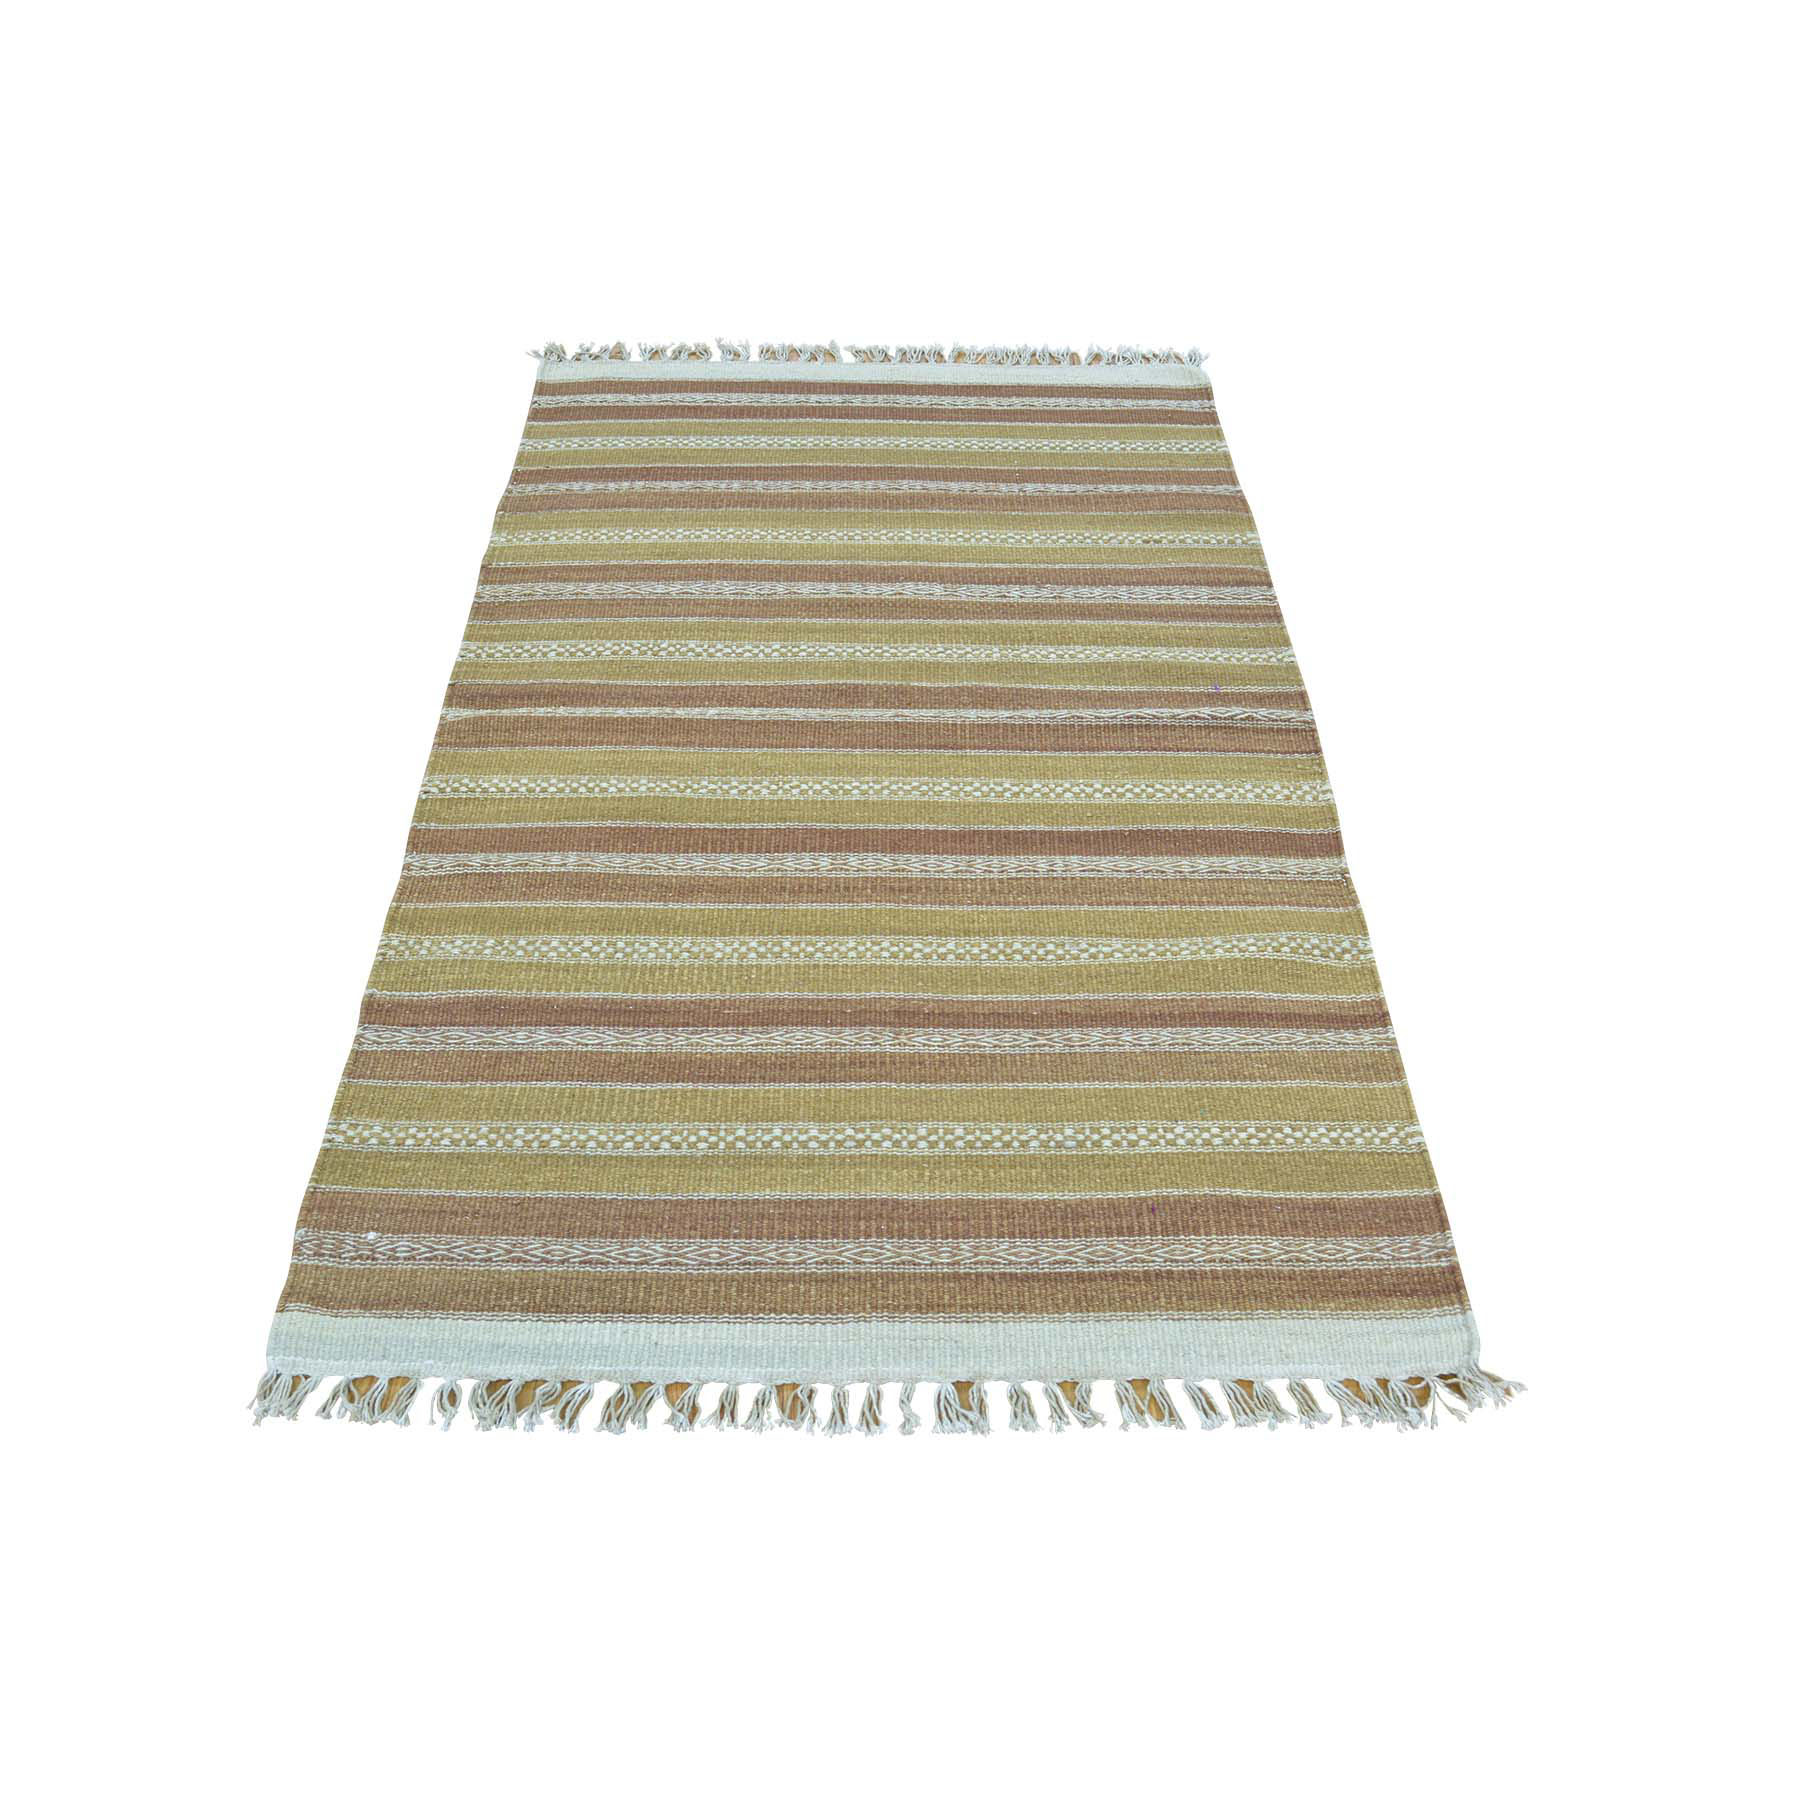 "2'9""X5'1"" Striped Durie Kilim Flat Weave Pure Wool Hand Woven Rug moac0aad"